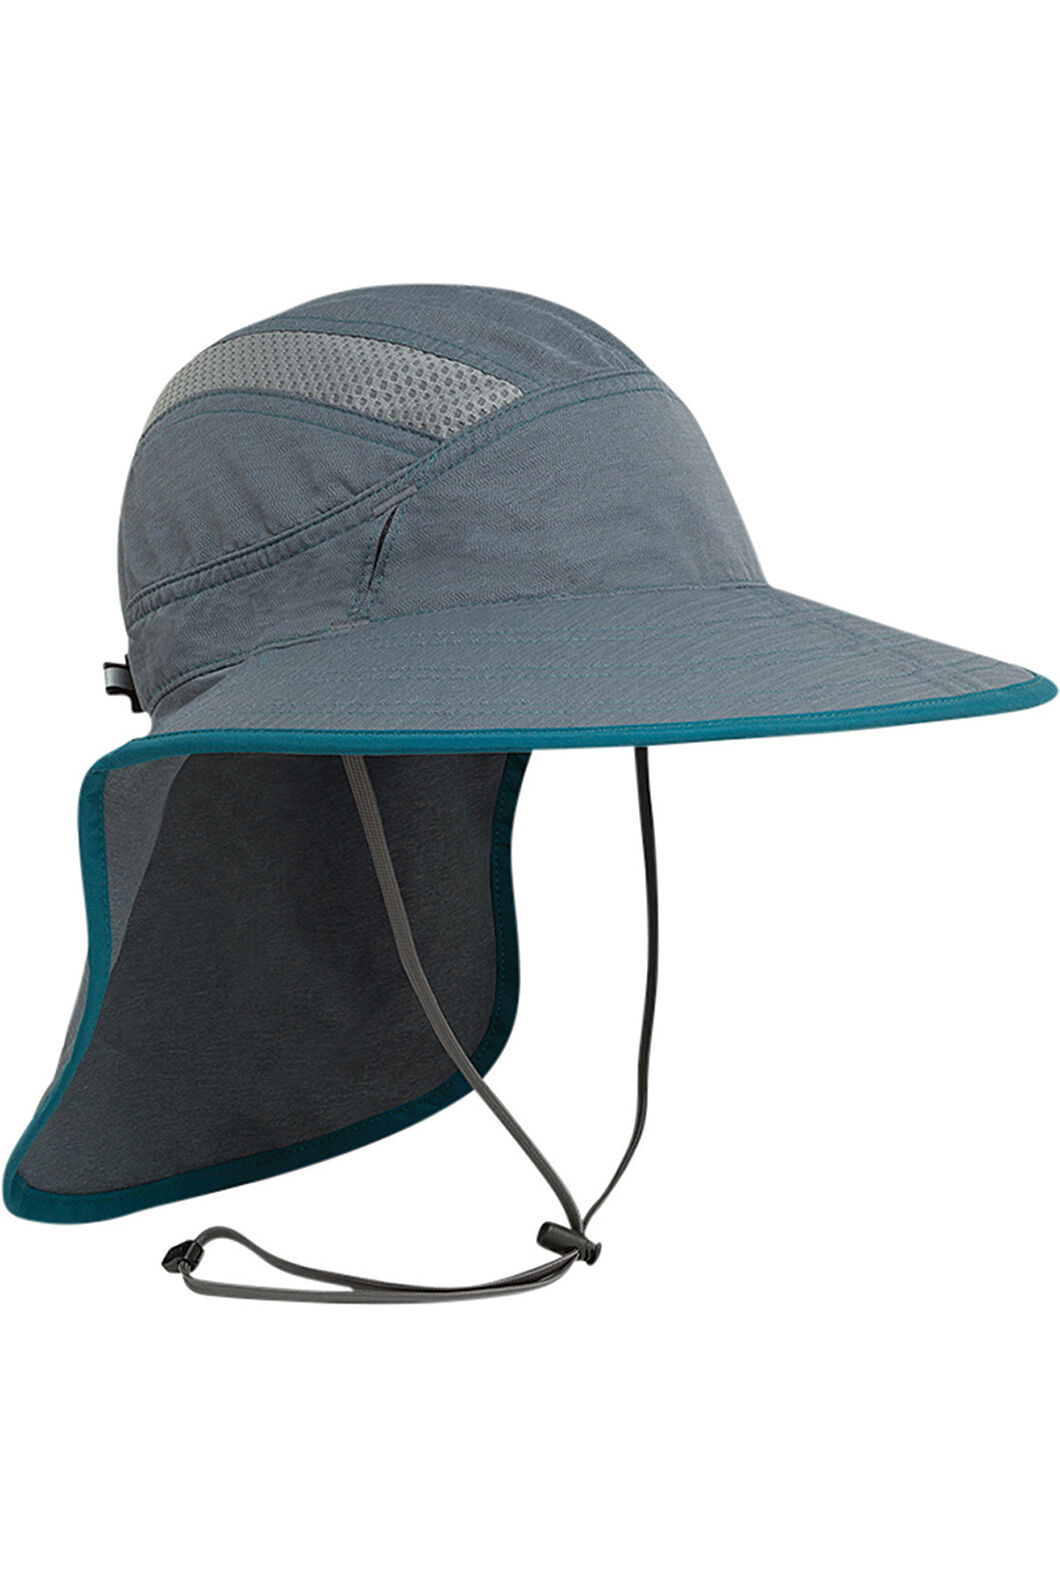 Sunday Afternoons Unisex Ultra Adventure Hat PumiceLight, CINDER/DARK GREY, hi-res